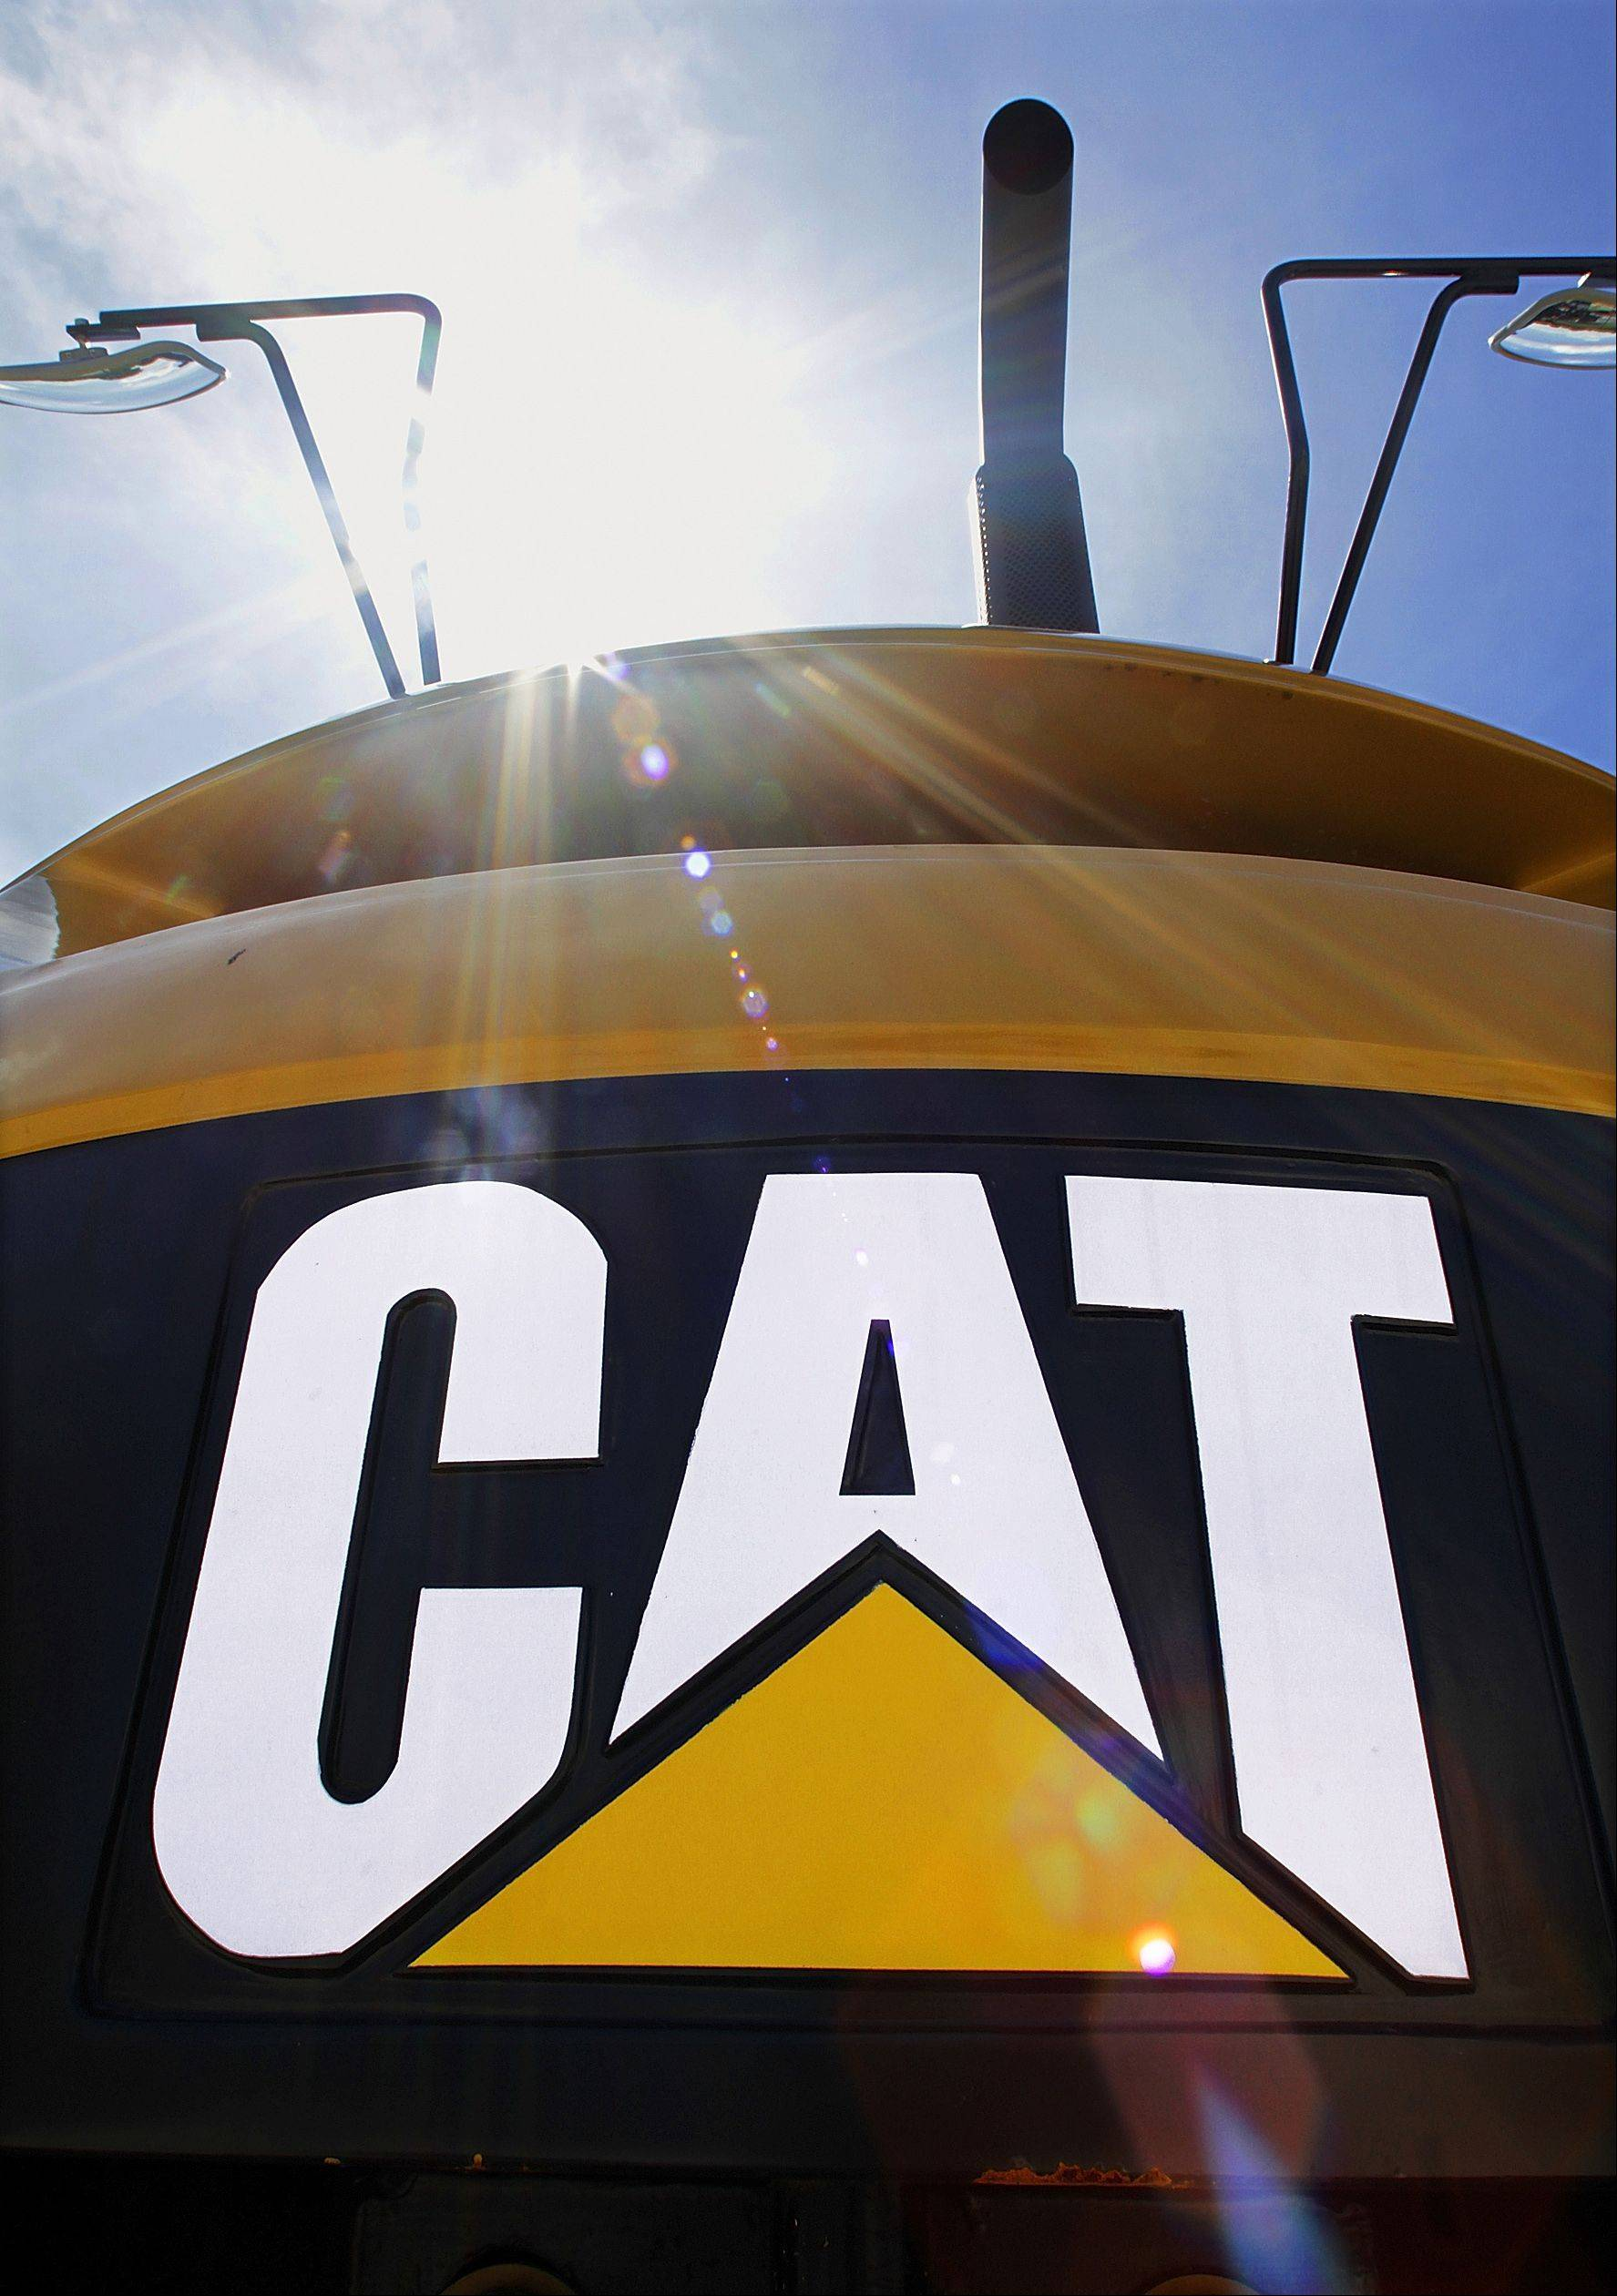 In this July 19, 2010 photo, the Caterpillar logo is displayed on heavy earth moving equipment in Springfield, Ill. Heavy machinery manufacturer Caterpillar said Thursday, July 22, 2010, its second-quarter earnings shot up 91 percent on a big increase in sales of equipment for industries like mining, infrastructure and energy.